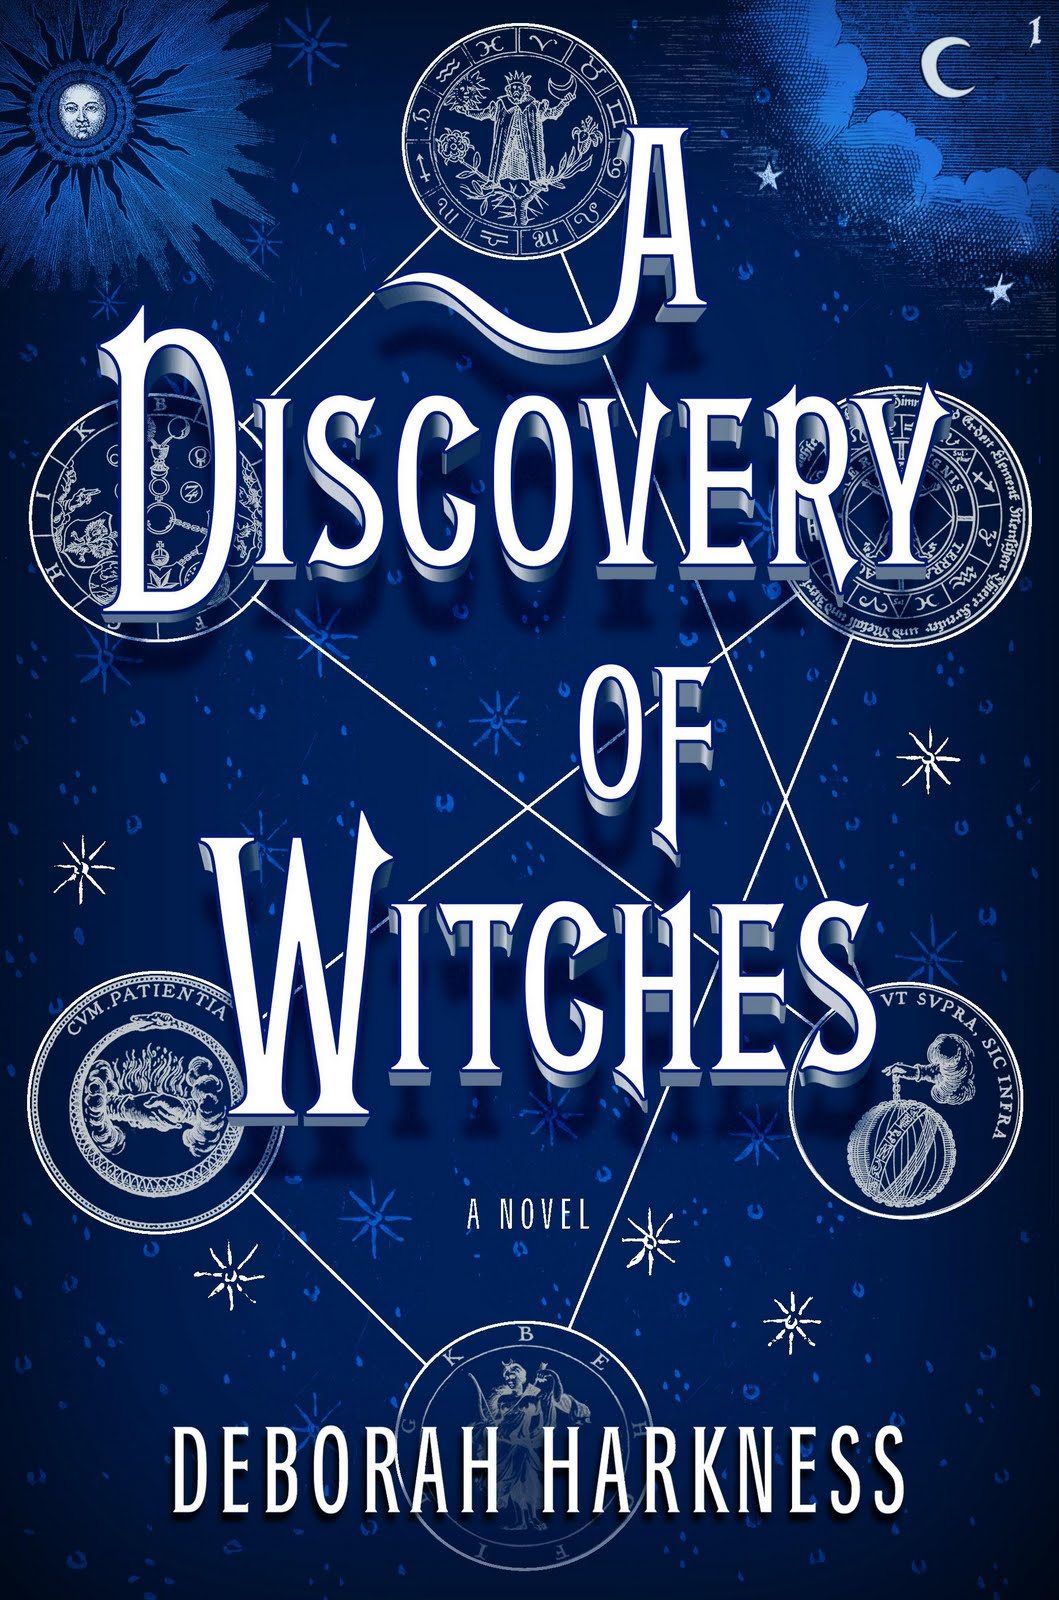 http://www.amazon.com/Discovery-Witches-Novel-Souls-Trilogy/dp/0143119680/ref=sr_1_3?s=books&ie=UTF8&qid=1405058946&sr=1-3&keywords=all+souls+trilogy